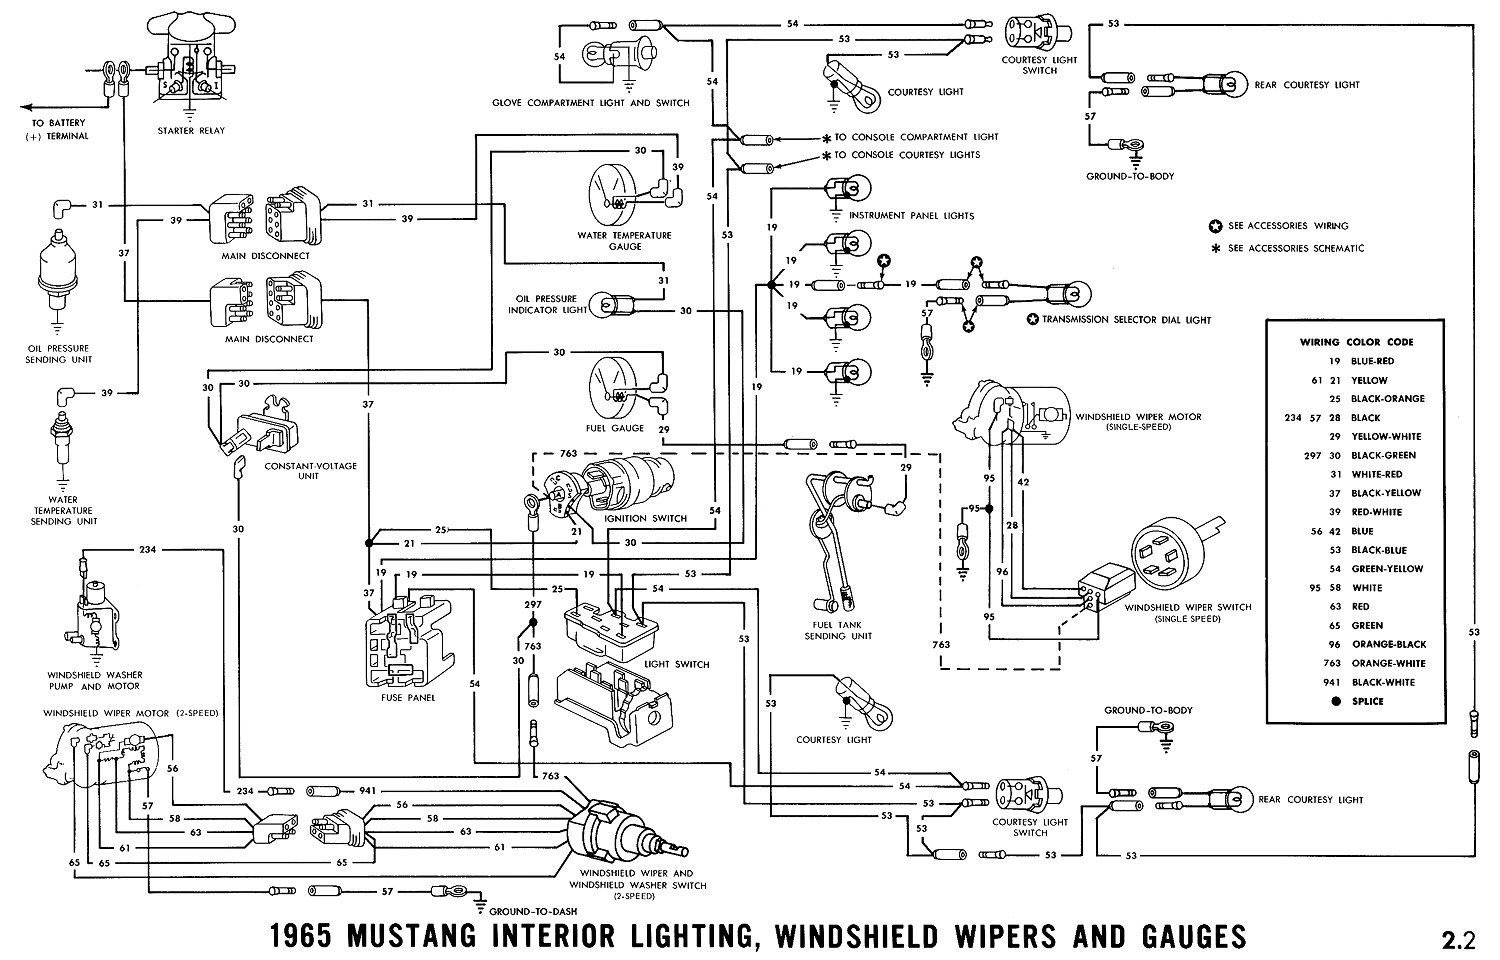 1999 Mercury Cougar Radio Wiring Diagram Library Stereo 1965 Mustang Diagrams Average Joe Restoration Fuse Location